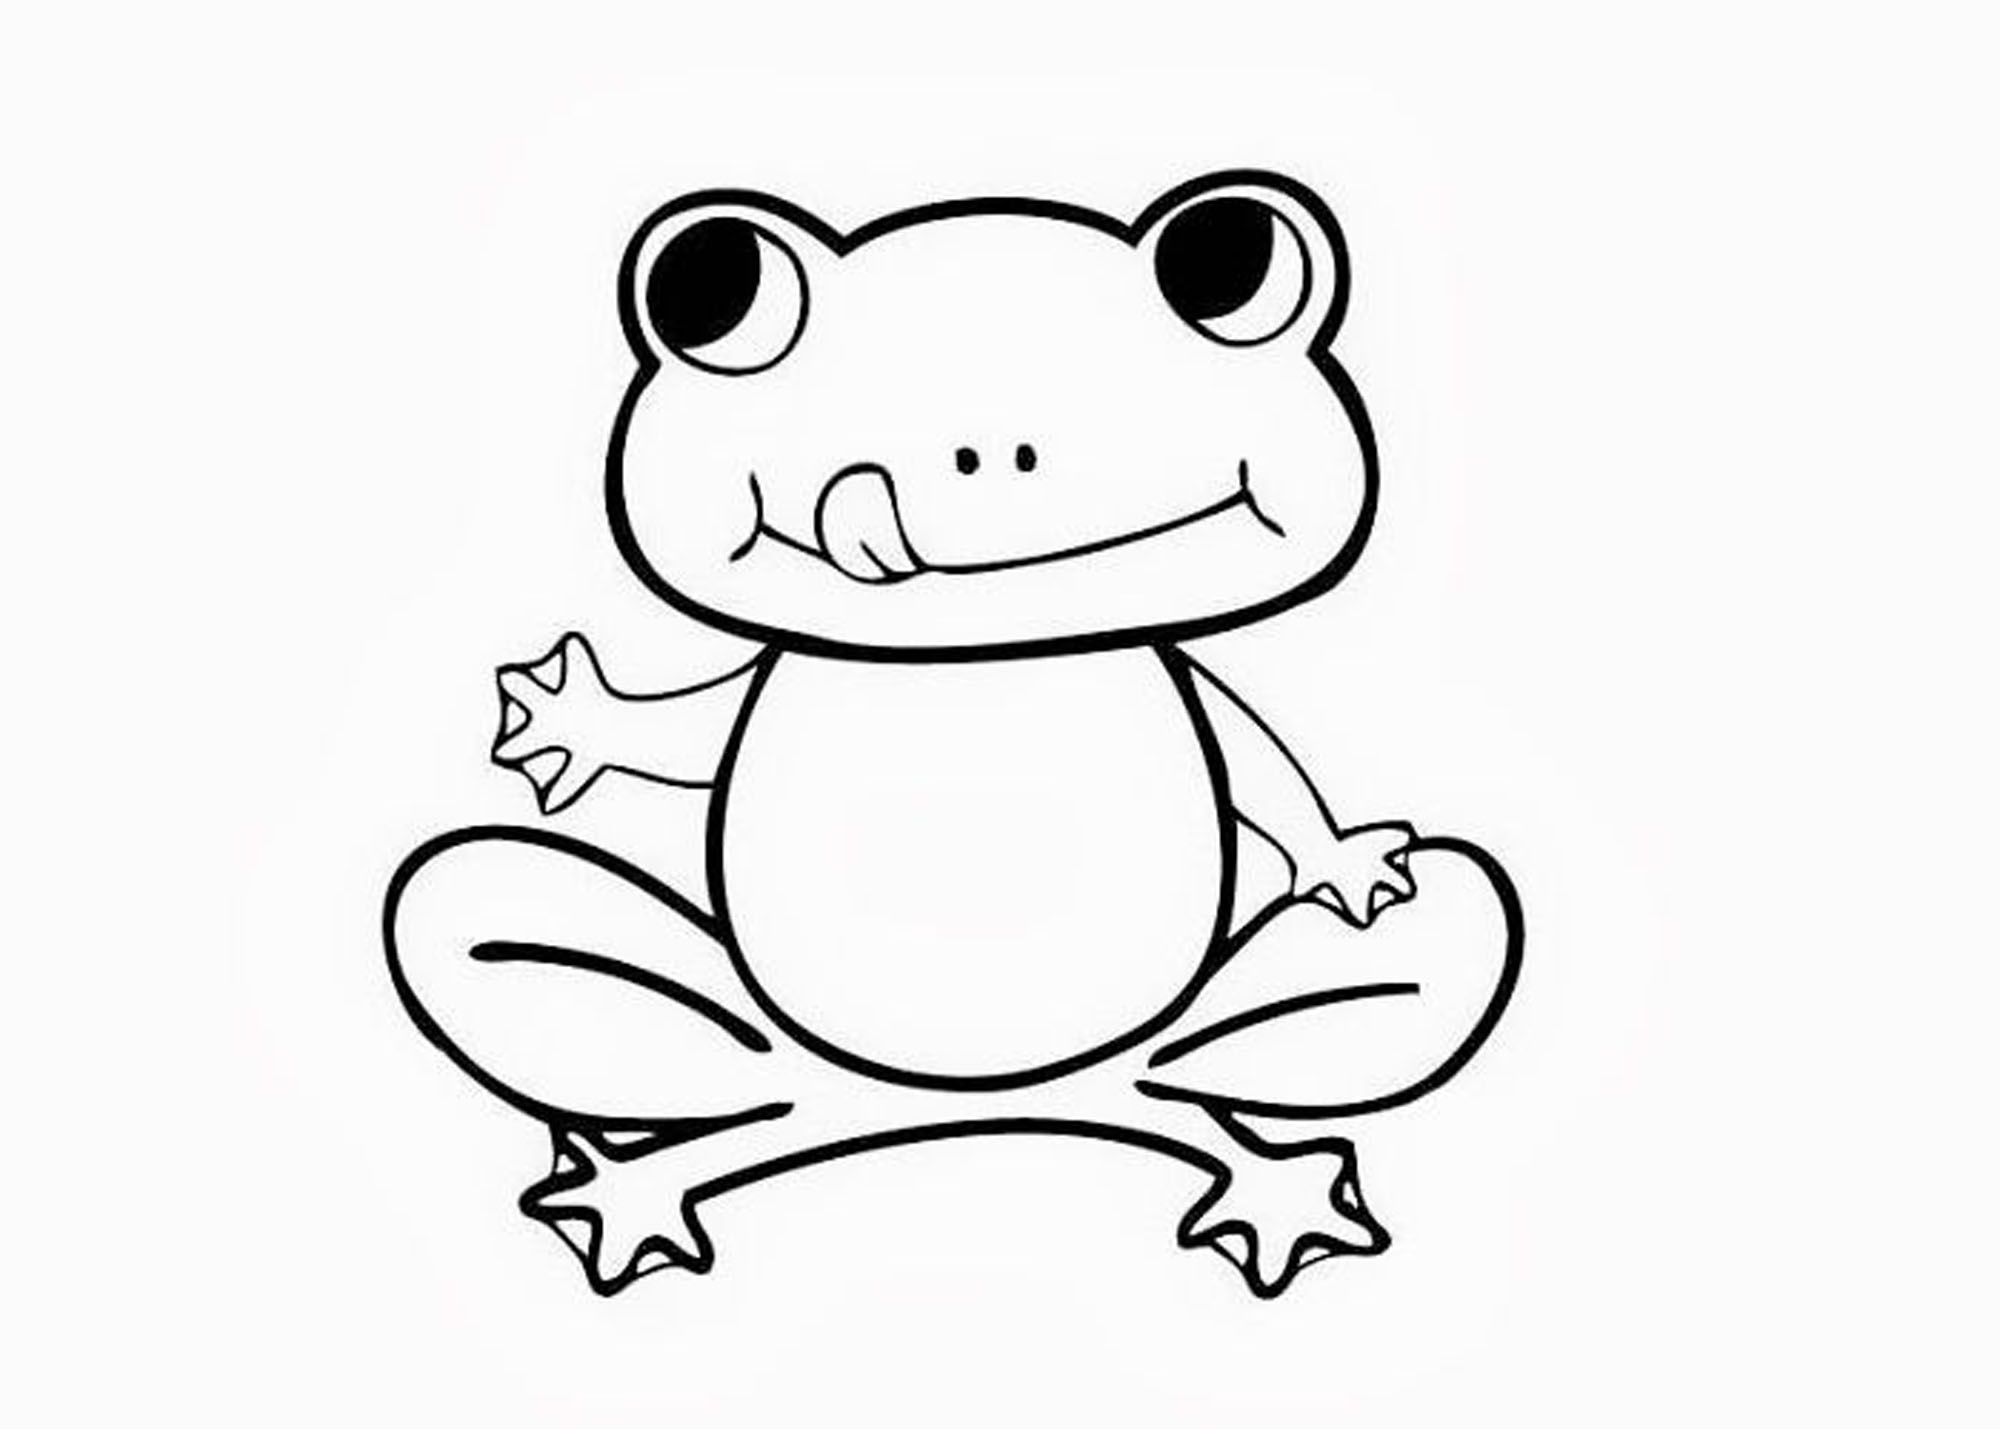 2000x1429 Cute Frog Coloring Pages Free Printable Orango Prixducommerce